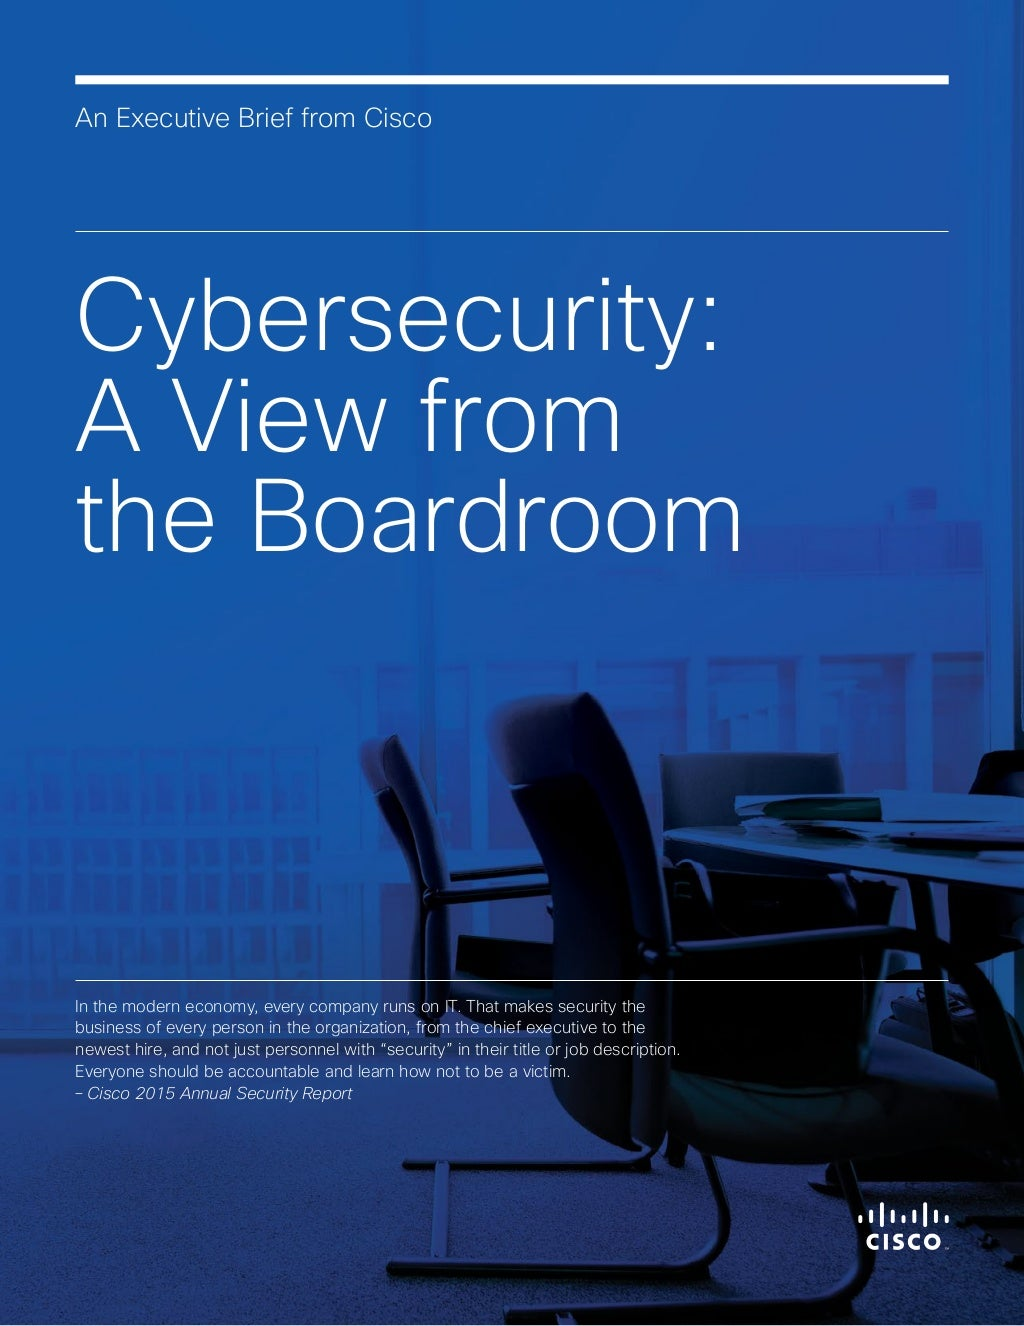 Cybersecurity: A View from the Boardroom